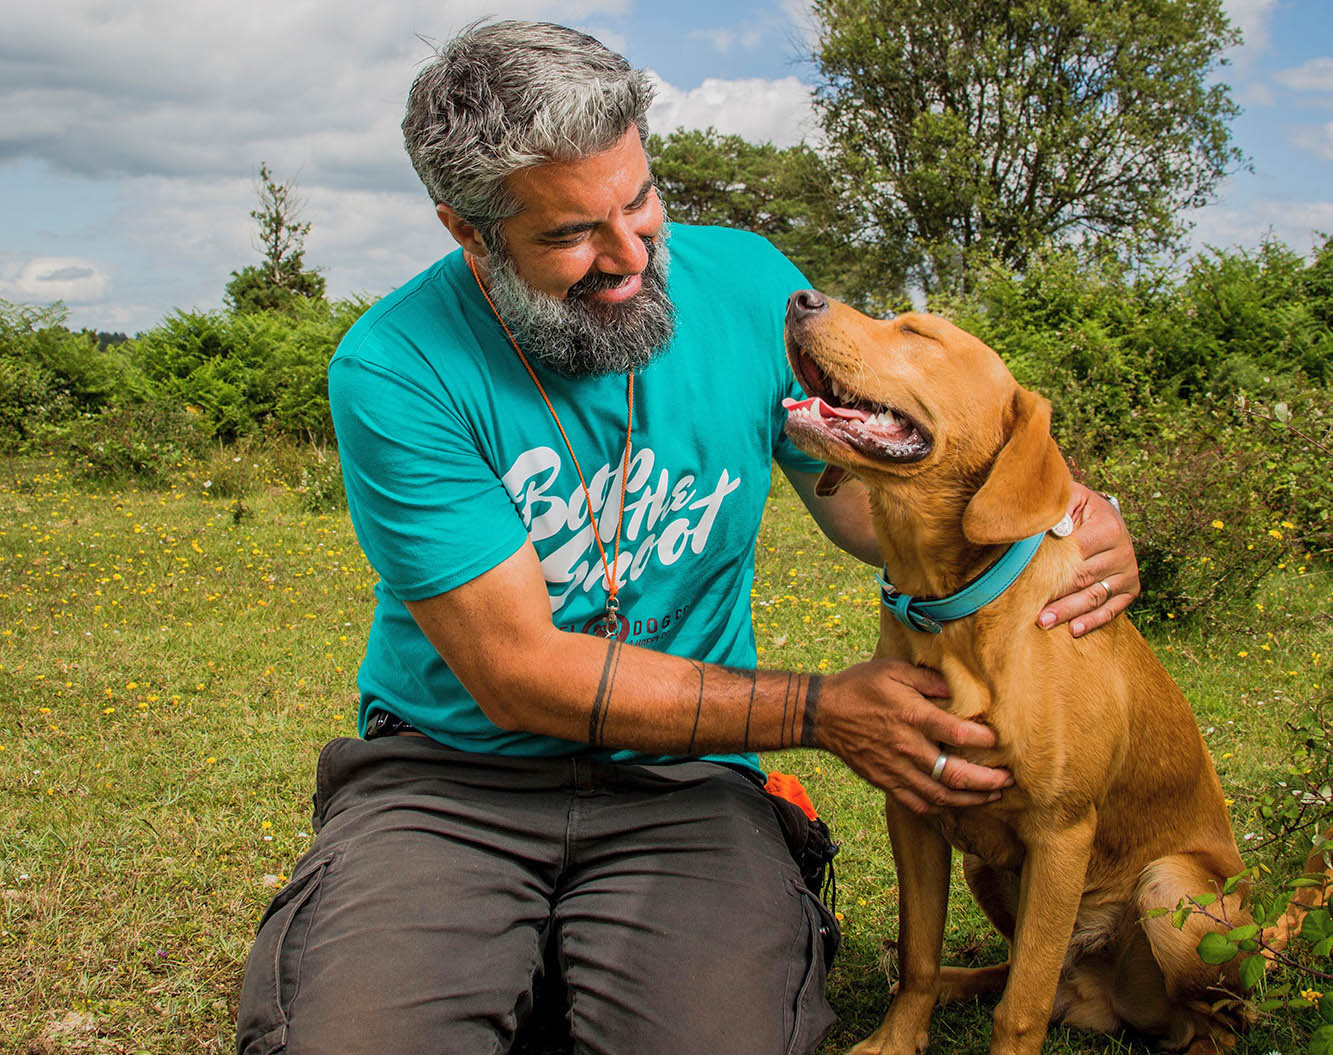 Rewarding a dog with lots of positive praise is great (but treats are usually better!)